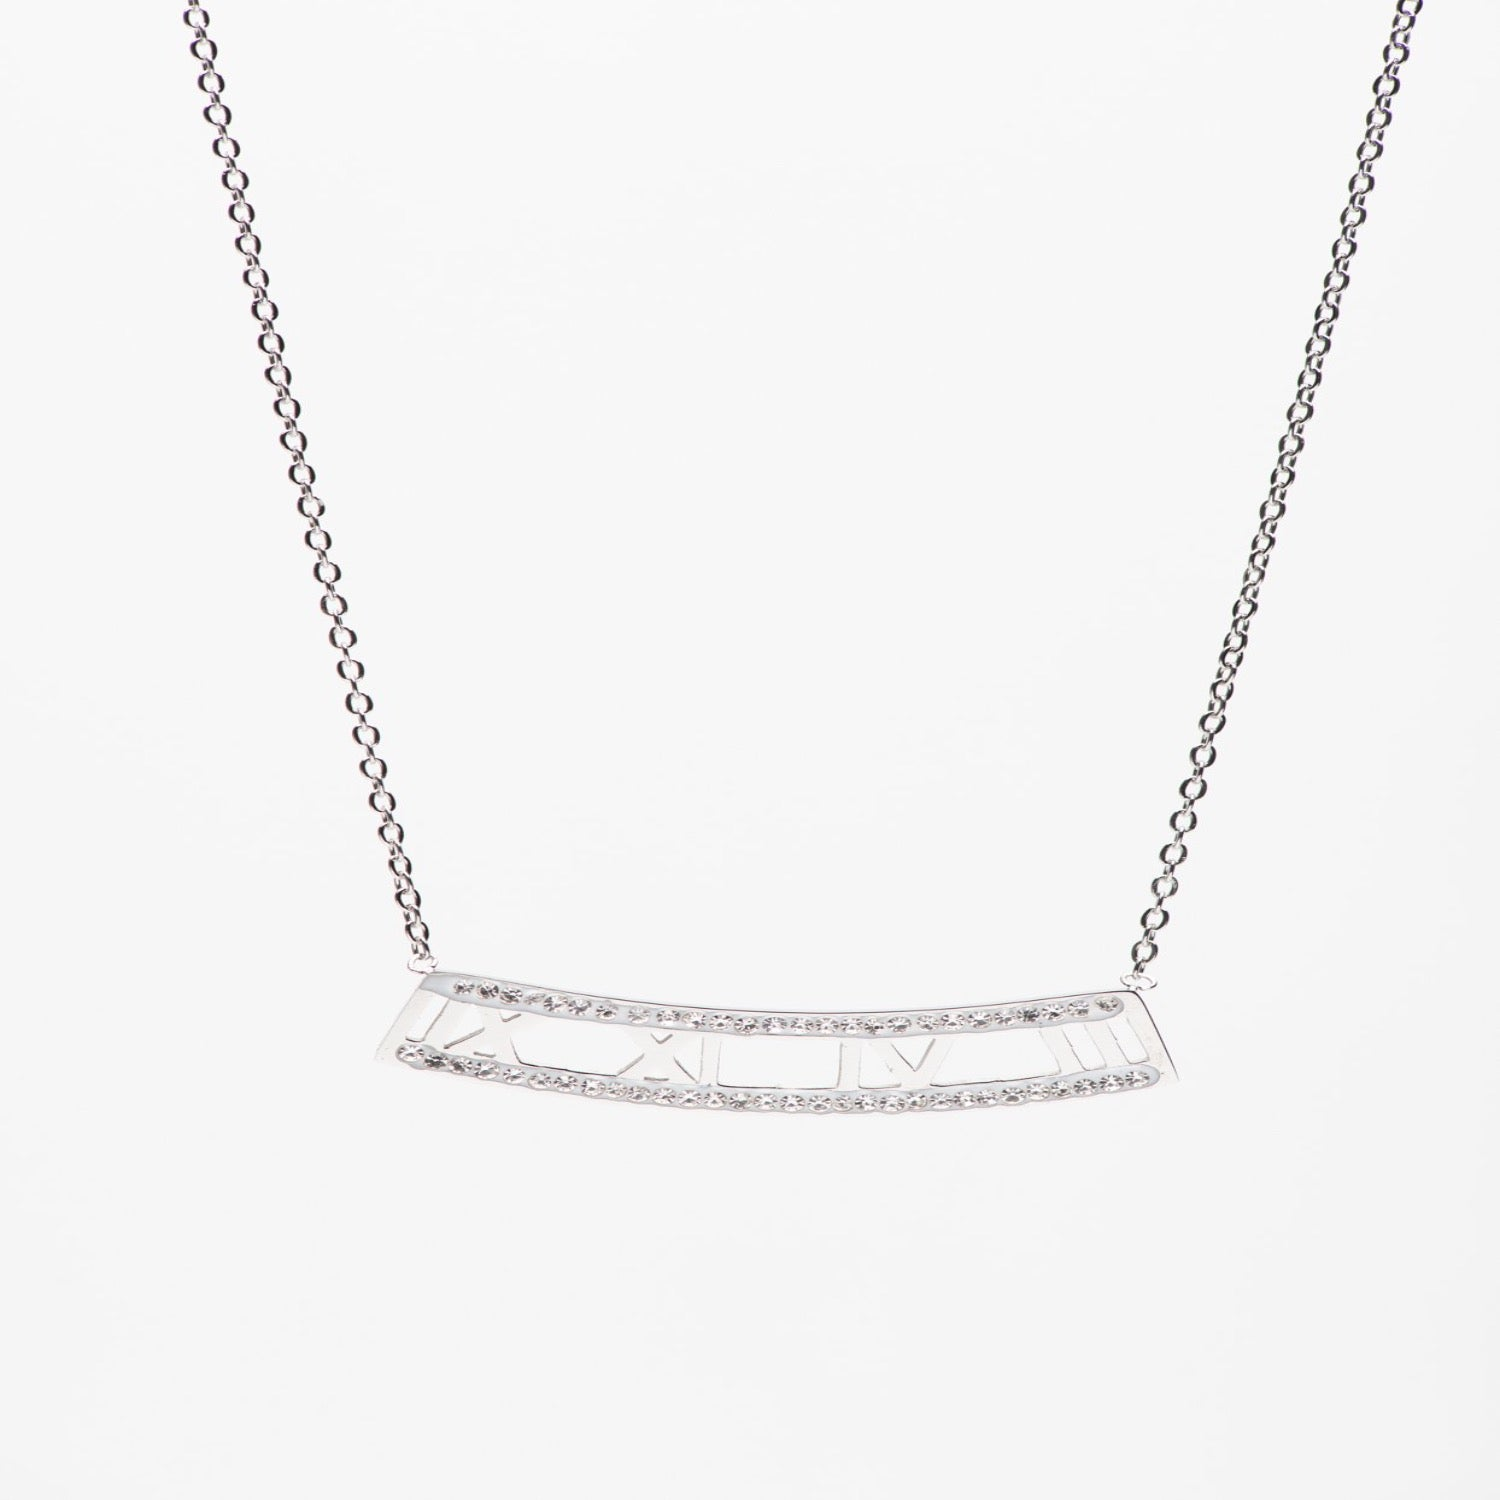 Stainless Steel roman numeral bar necklace